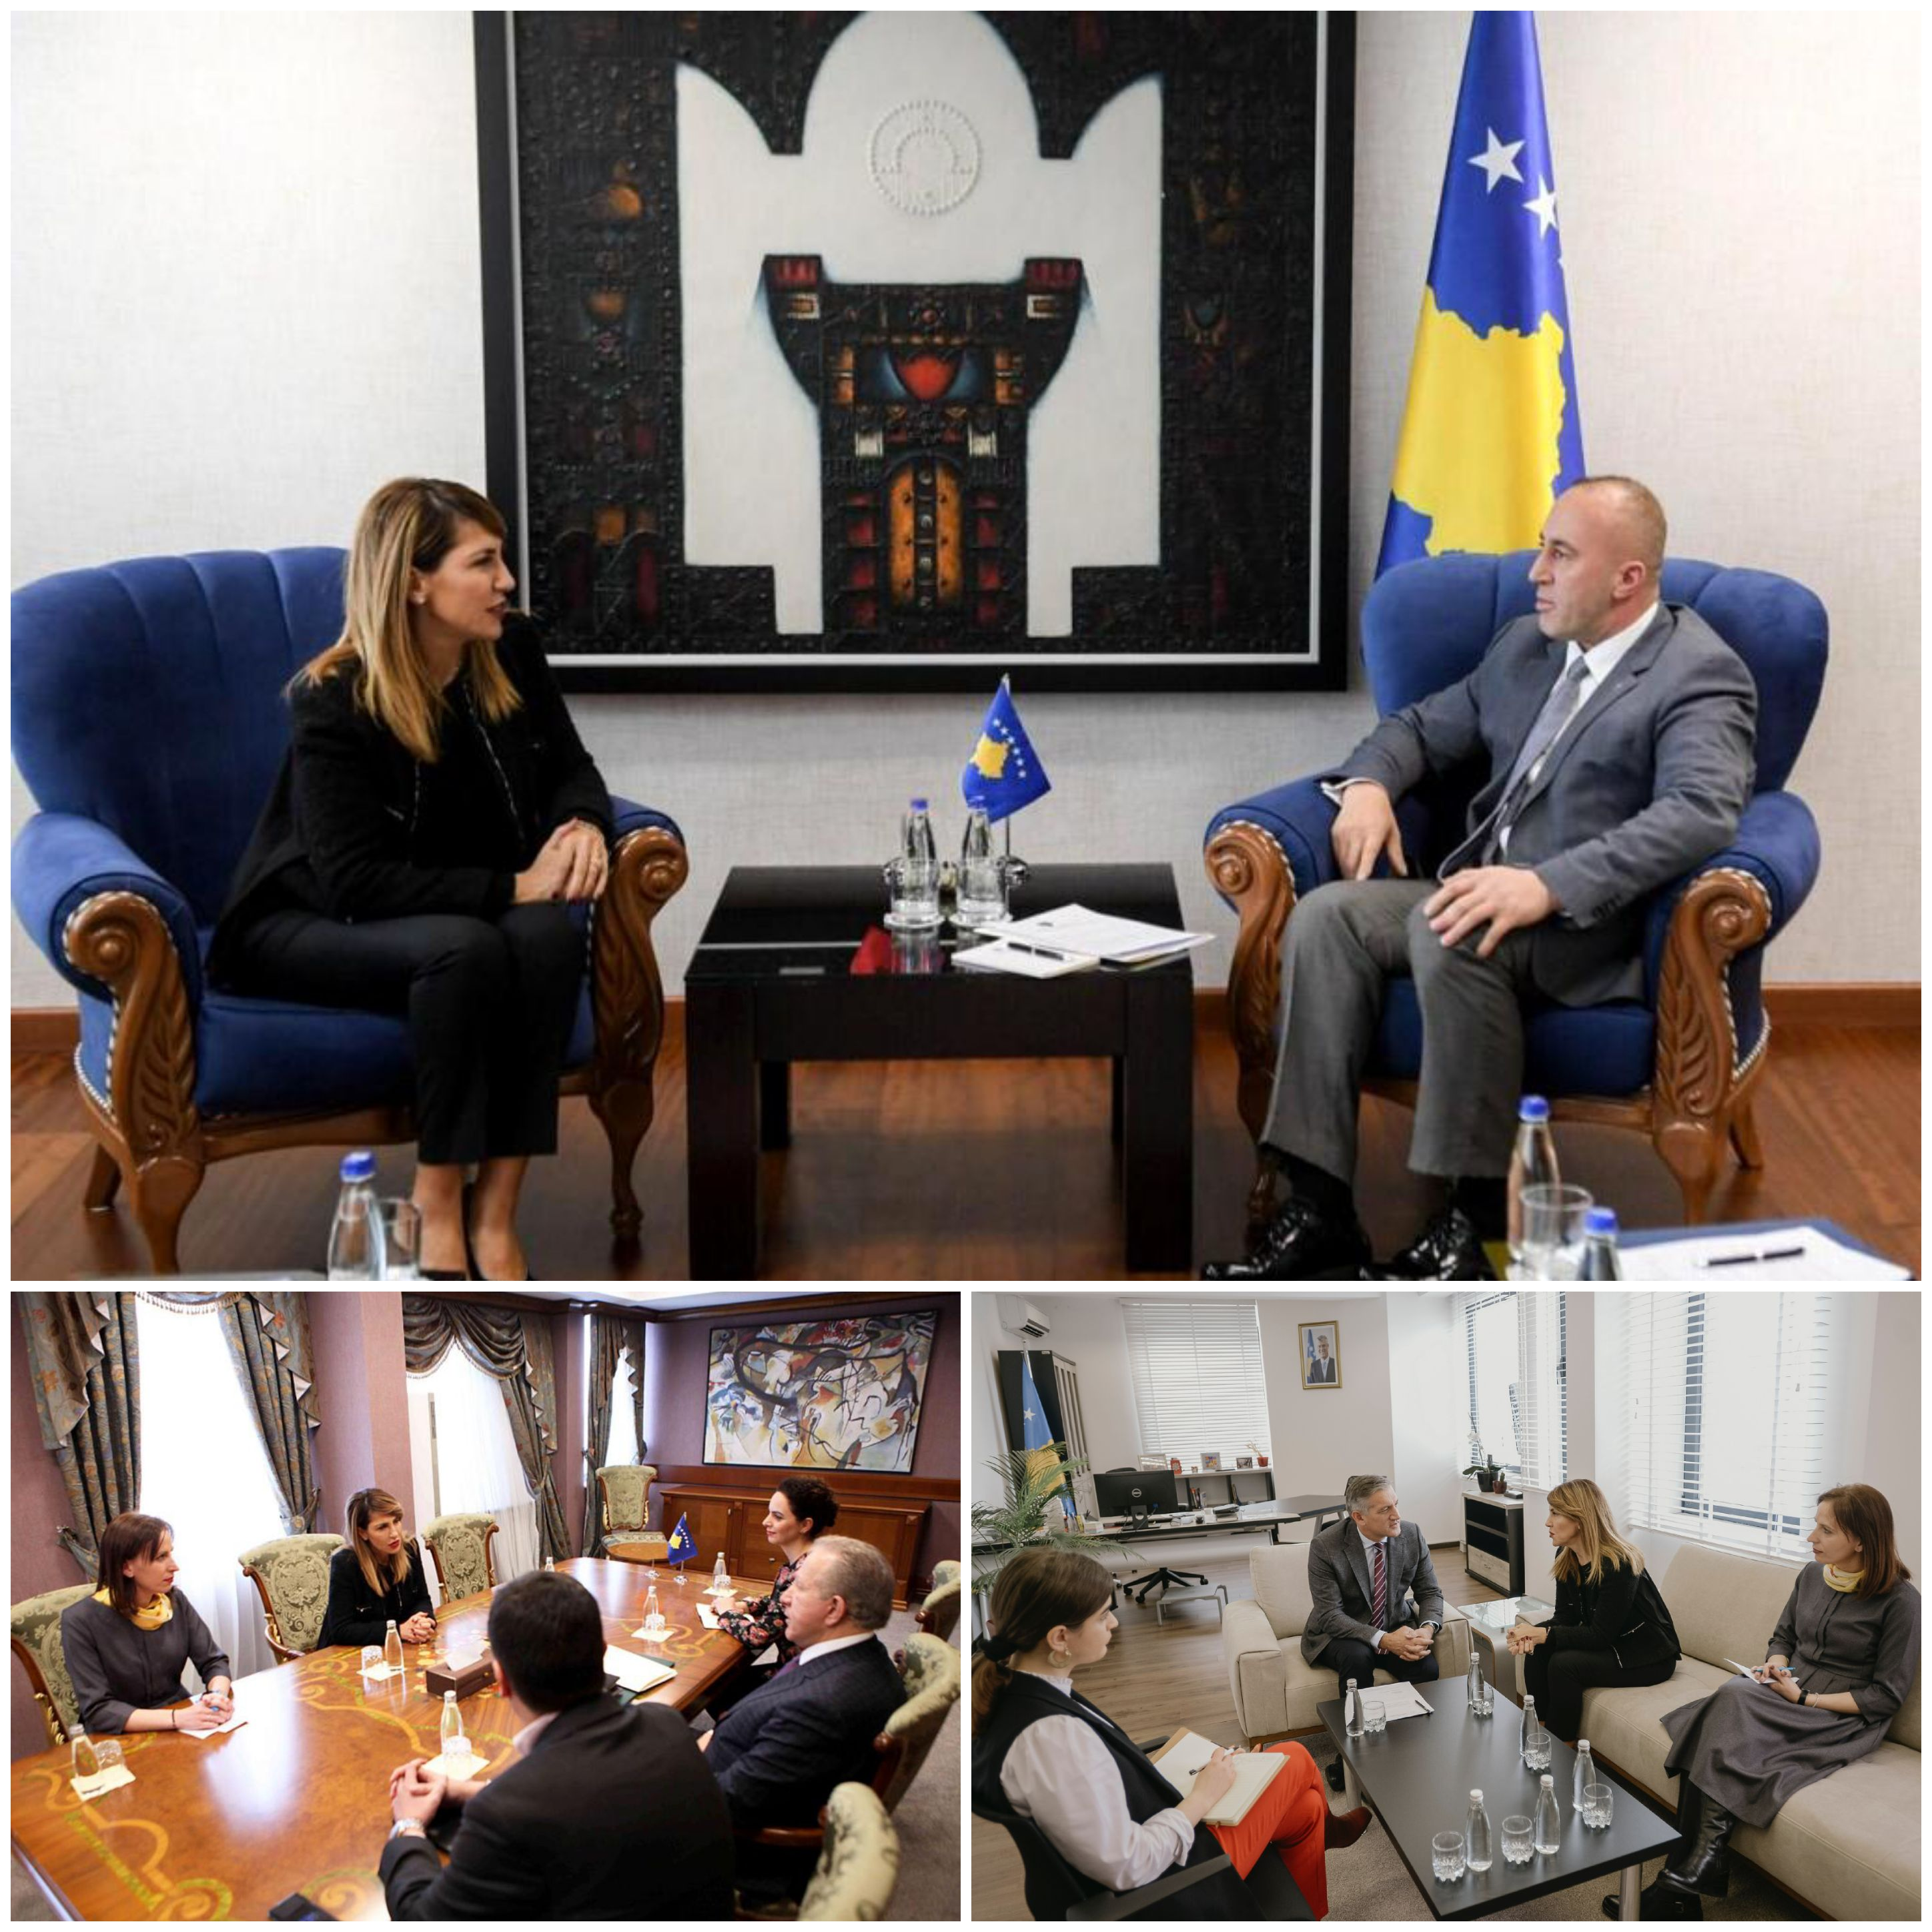 RCC Secretary General Majlinda Bregu meets top officials during her visit to Pristina on 18 January 2019